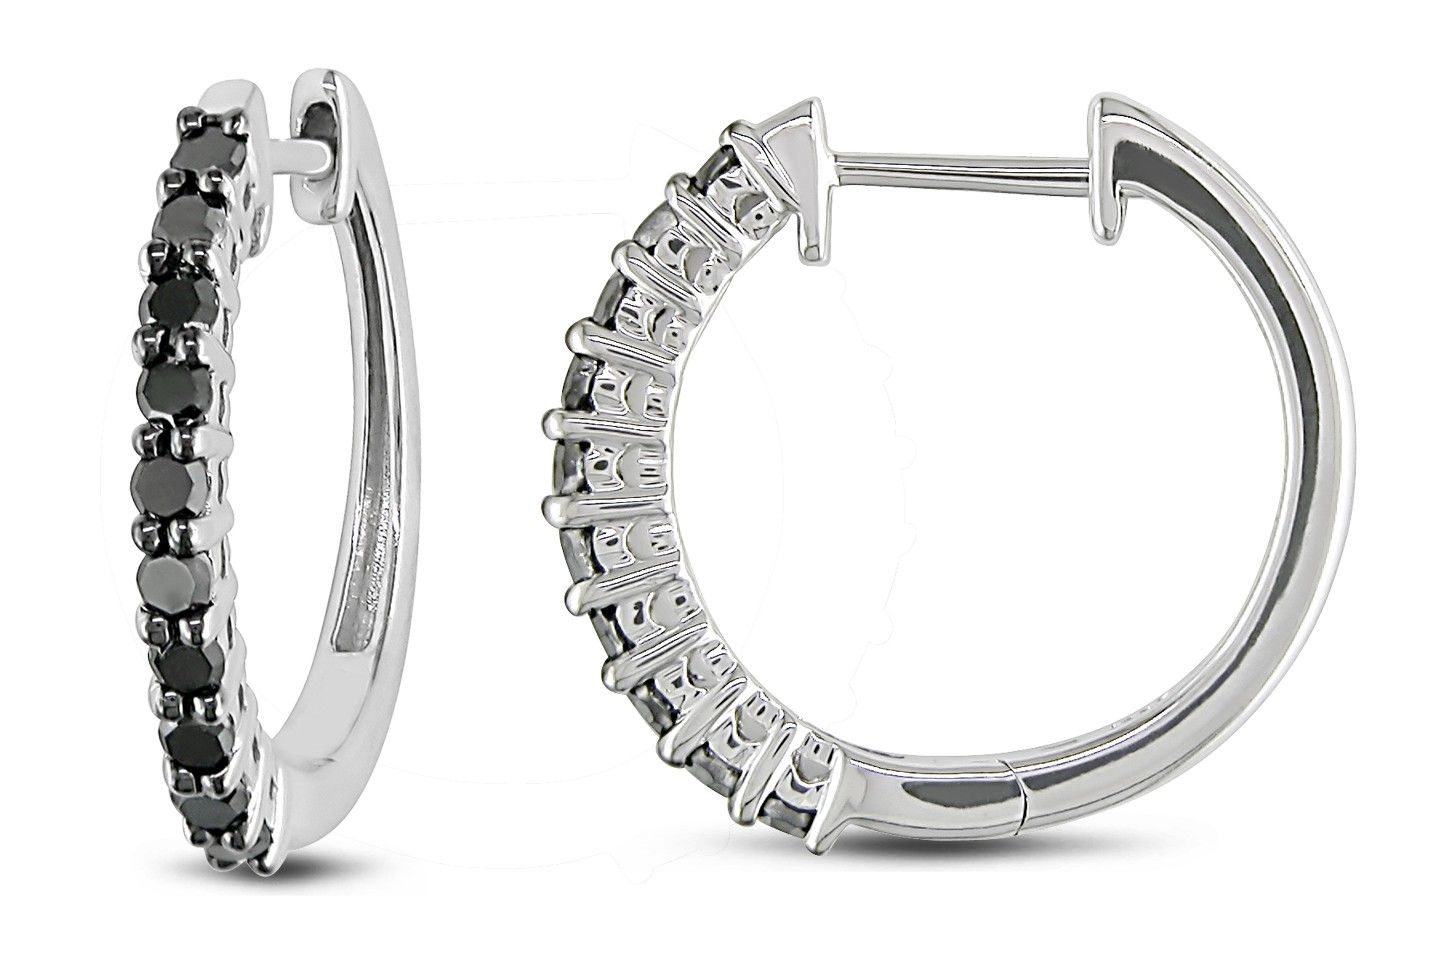 1/2 Carat Black Diamond 10K White Gold Hoop Earrings.  A stunning and dramatic pair of hoops. Crafted in gleaming 10K white gold, these black diamond encrusted earrings have a simple, modern and elegant design. Black diamonds receive their dramatic tone through a special color enhancement process. #hoop #earrings #gold